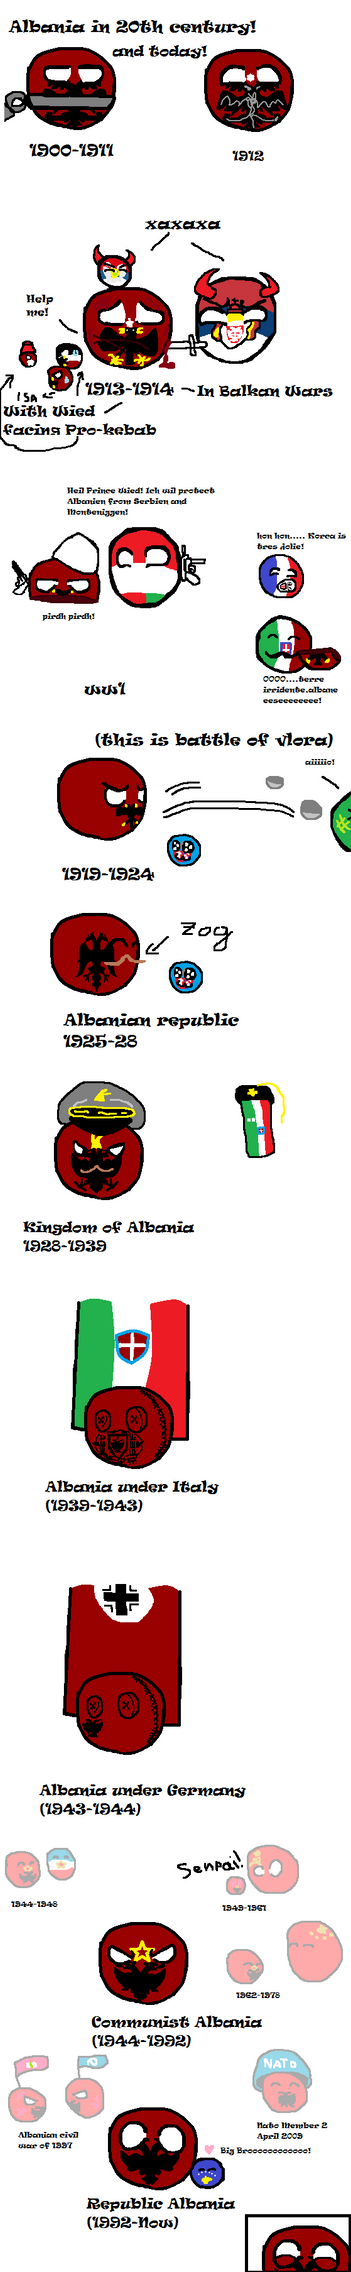 Albania in the 20th Century and today by Cordisiolol